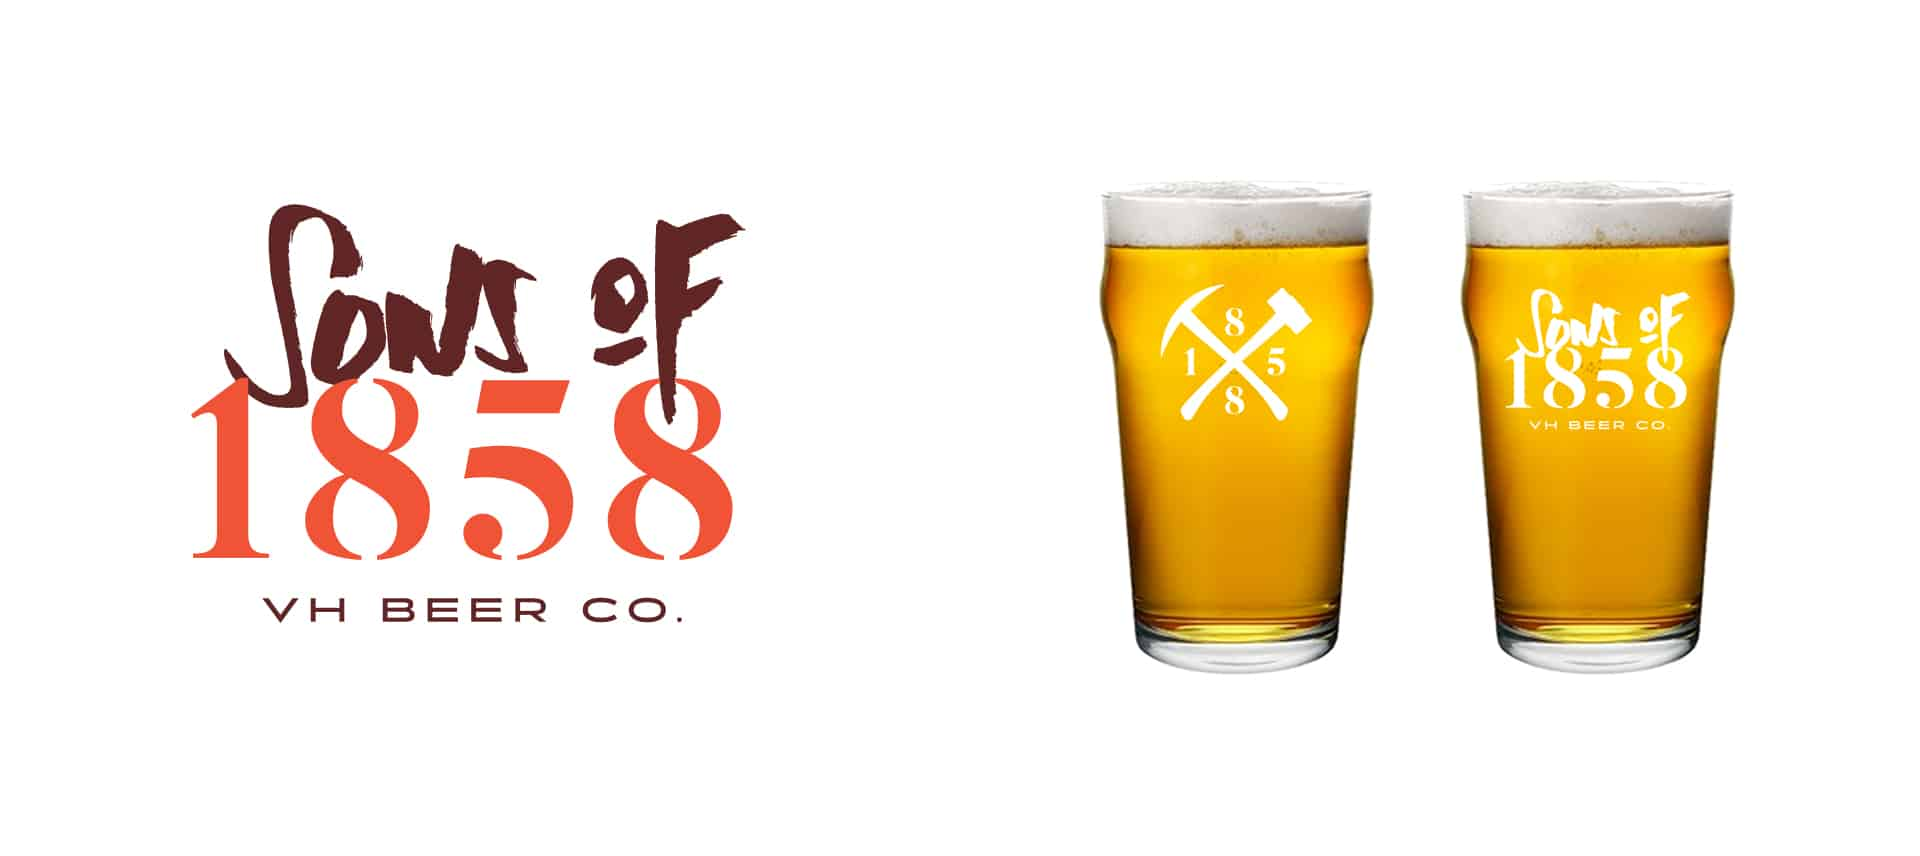 Sons of 1858 craft beer branding, packaging and design logo identity design